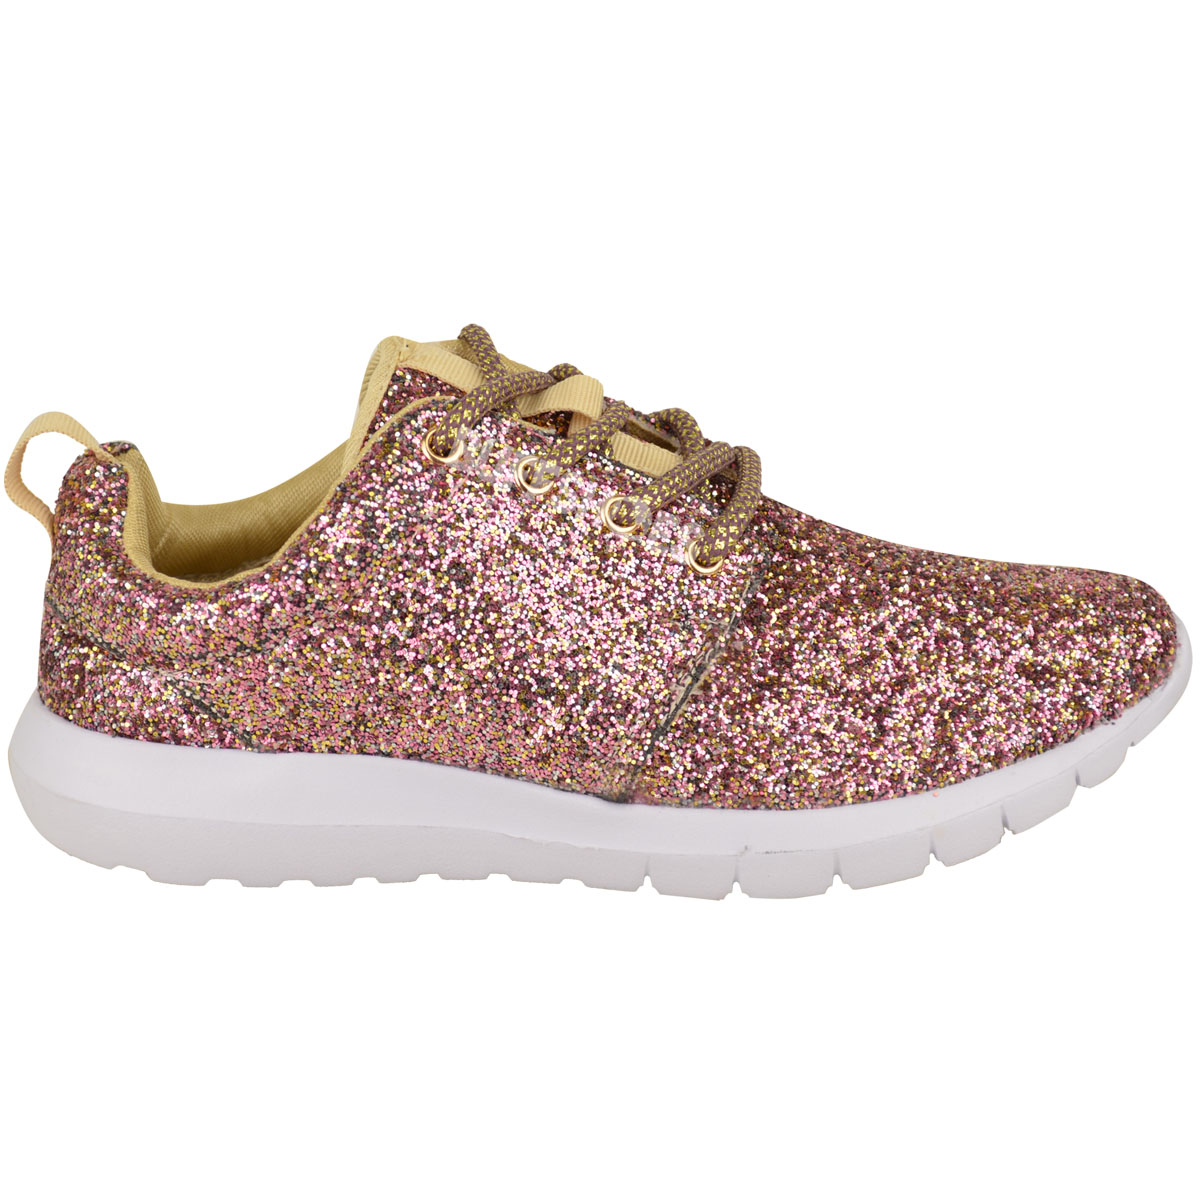 Womens Sparkly Shoes Uk